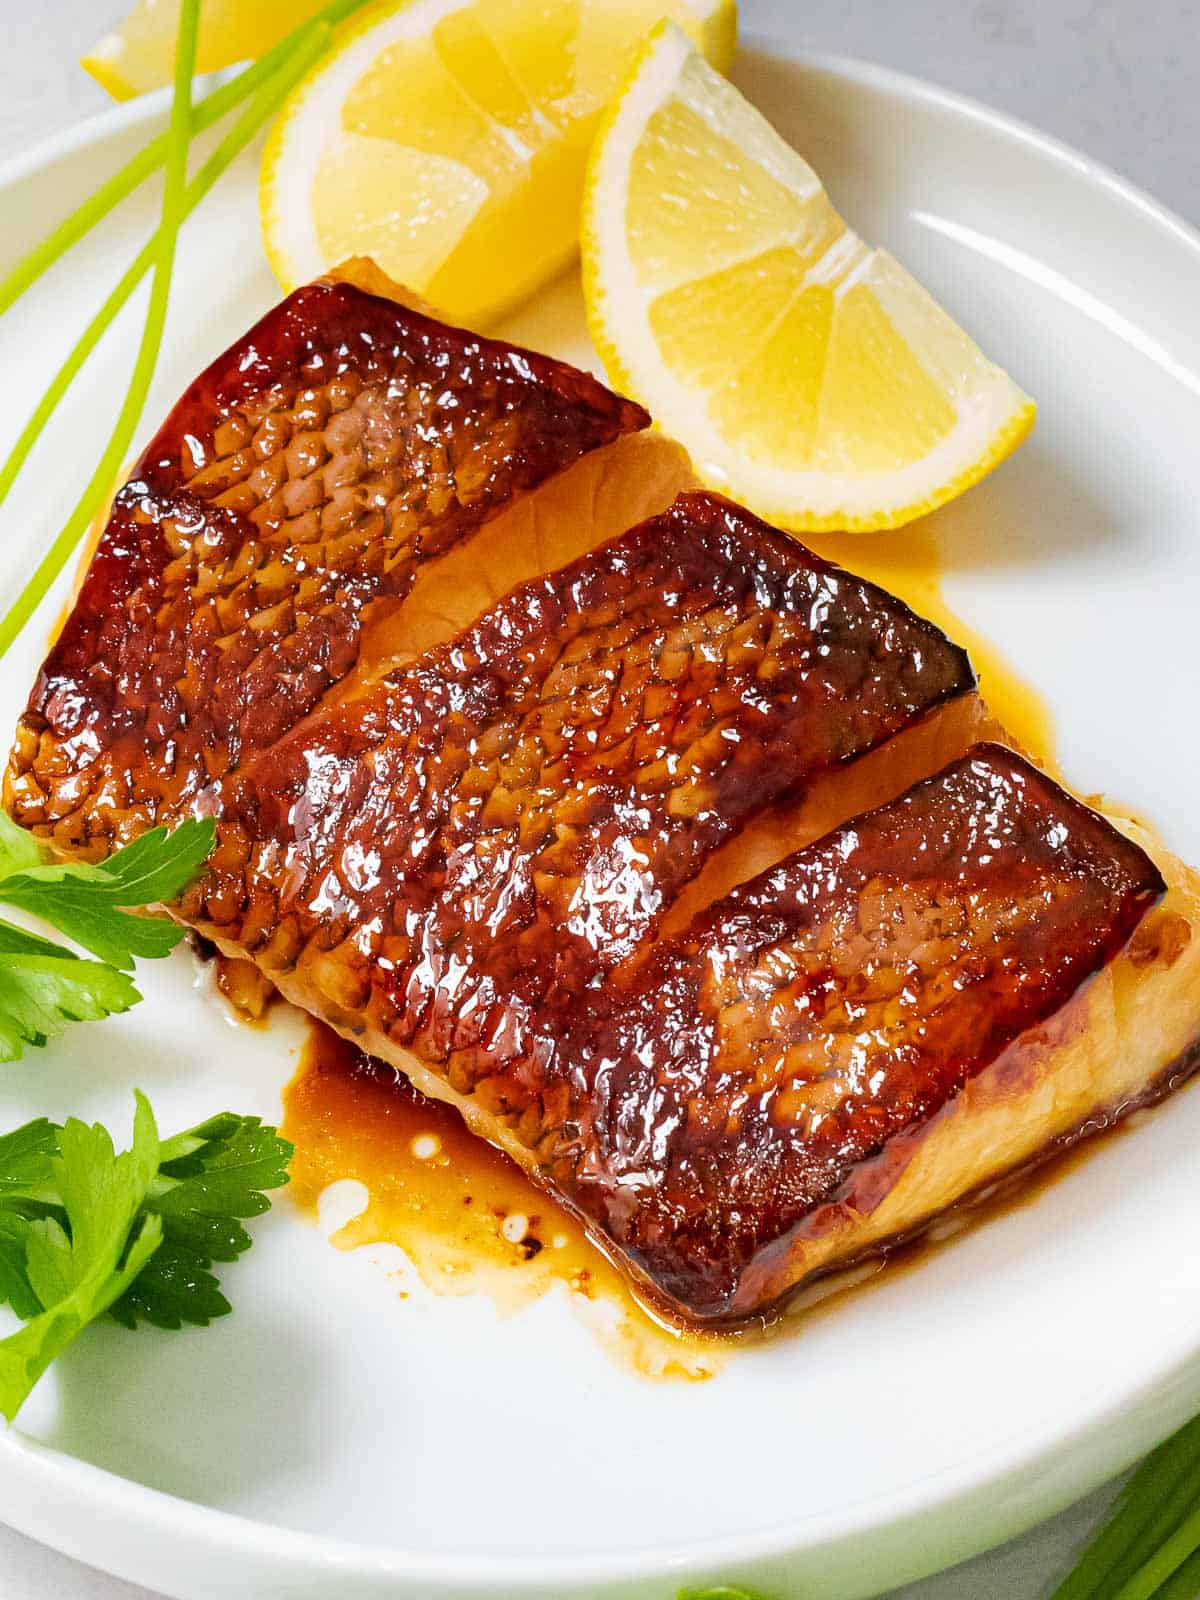 Close up of Chilean sea bass with crispy, golden brown skin with a soy ginger marinade on a white plate next to lemon wedges.